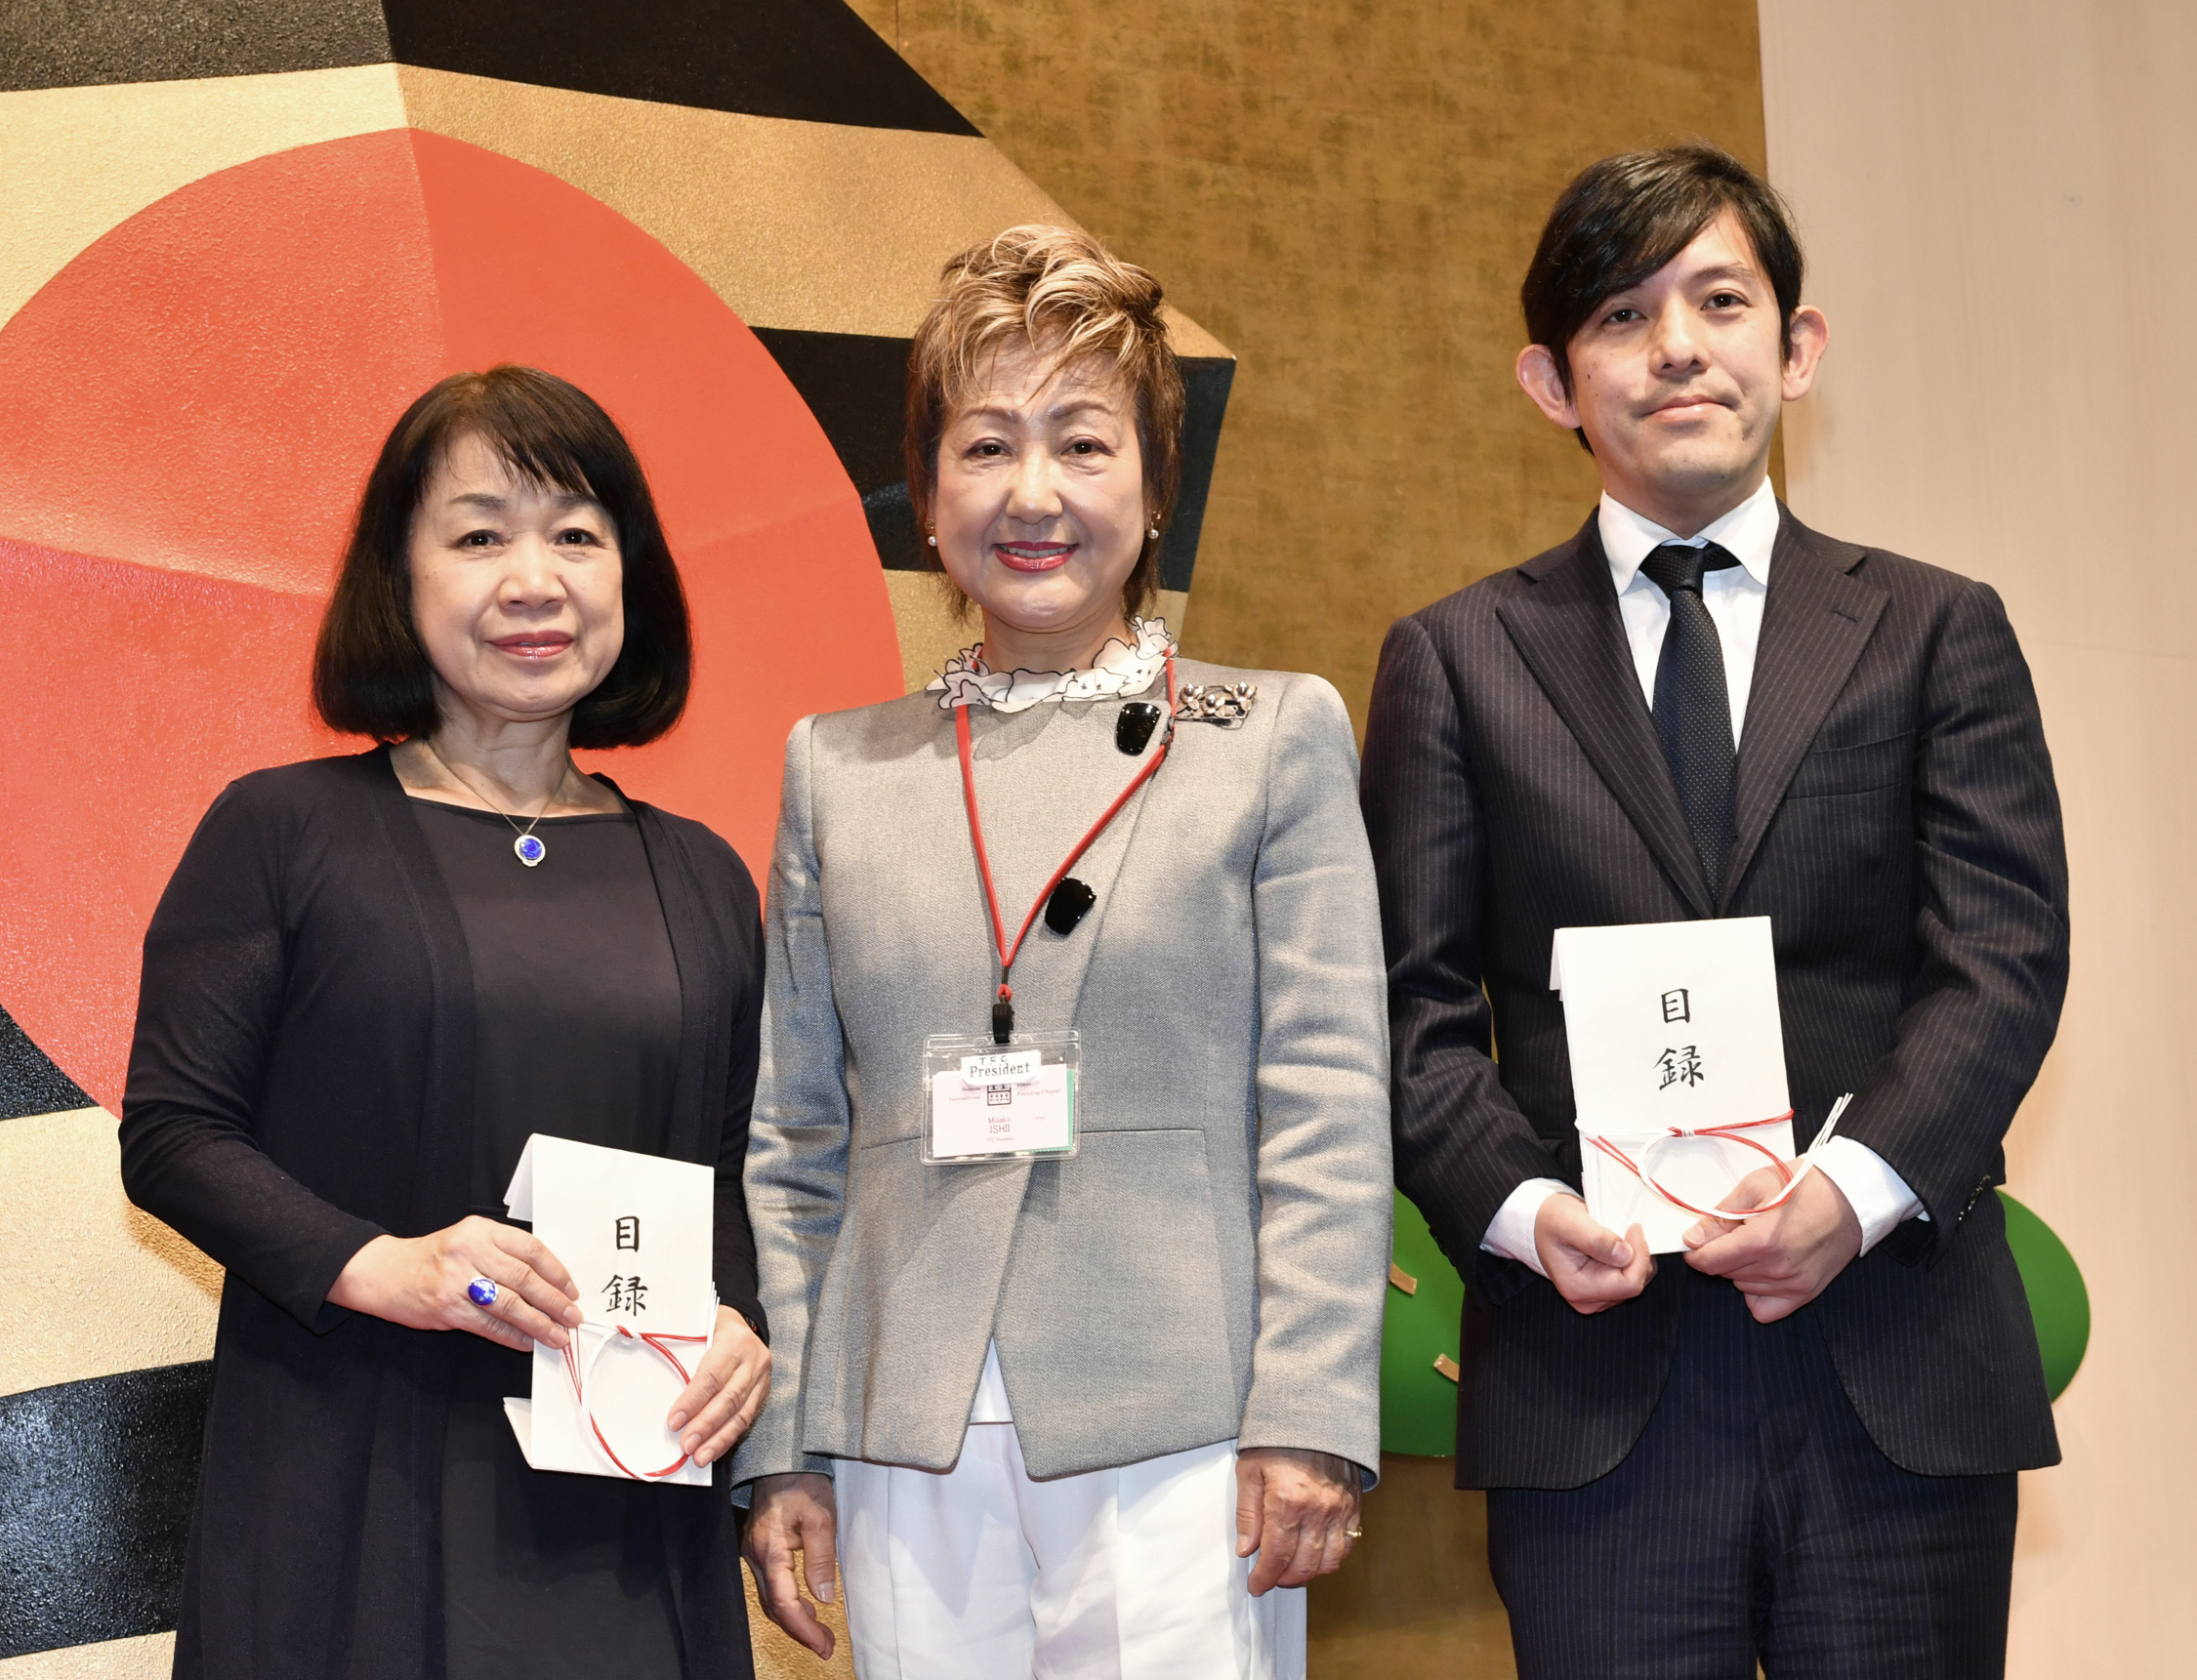 Above left: Fukuoka Gov. Hiroshi Ogawa (right) receives a donation from Belgium Ambassador Gunther Sleeuwagen on behalf of his wife, Ikebana International Fair 2017 Chairperson Rahael Zewdie Sleeuwagen, at the Ikebana International 2018 New Year Luncheon at Palace Hotel Tokyo on Jan. 18. Above right: Yusuke Numata (right), deputy sales officer and deputy general manager of The Japan Times, poses for a photo with Ikebana International Tokyo Founding Chapter President Misako Ishii (center) and Toshiko Hasegawa, acting president and secretary general of the Japan National Student Association Fund. | YOSHIAKI MIURA